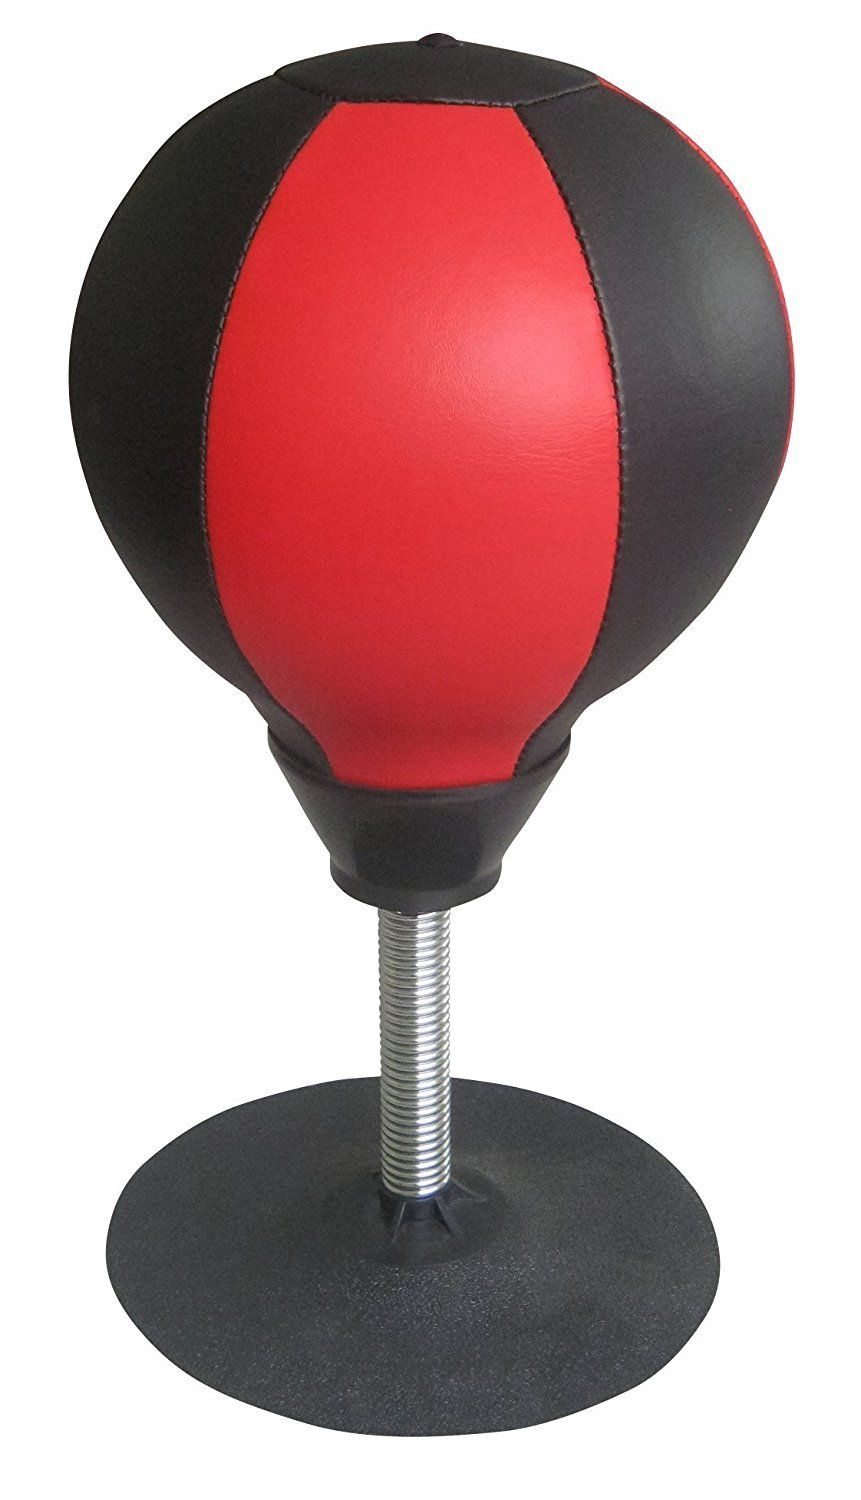 Desktop Punching Ball With Stand